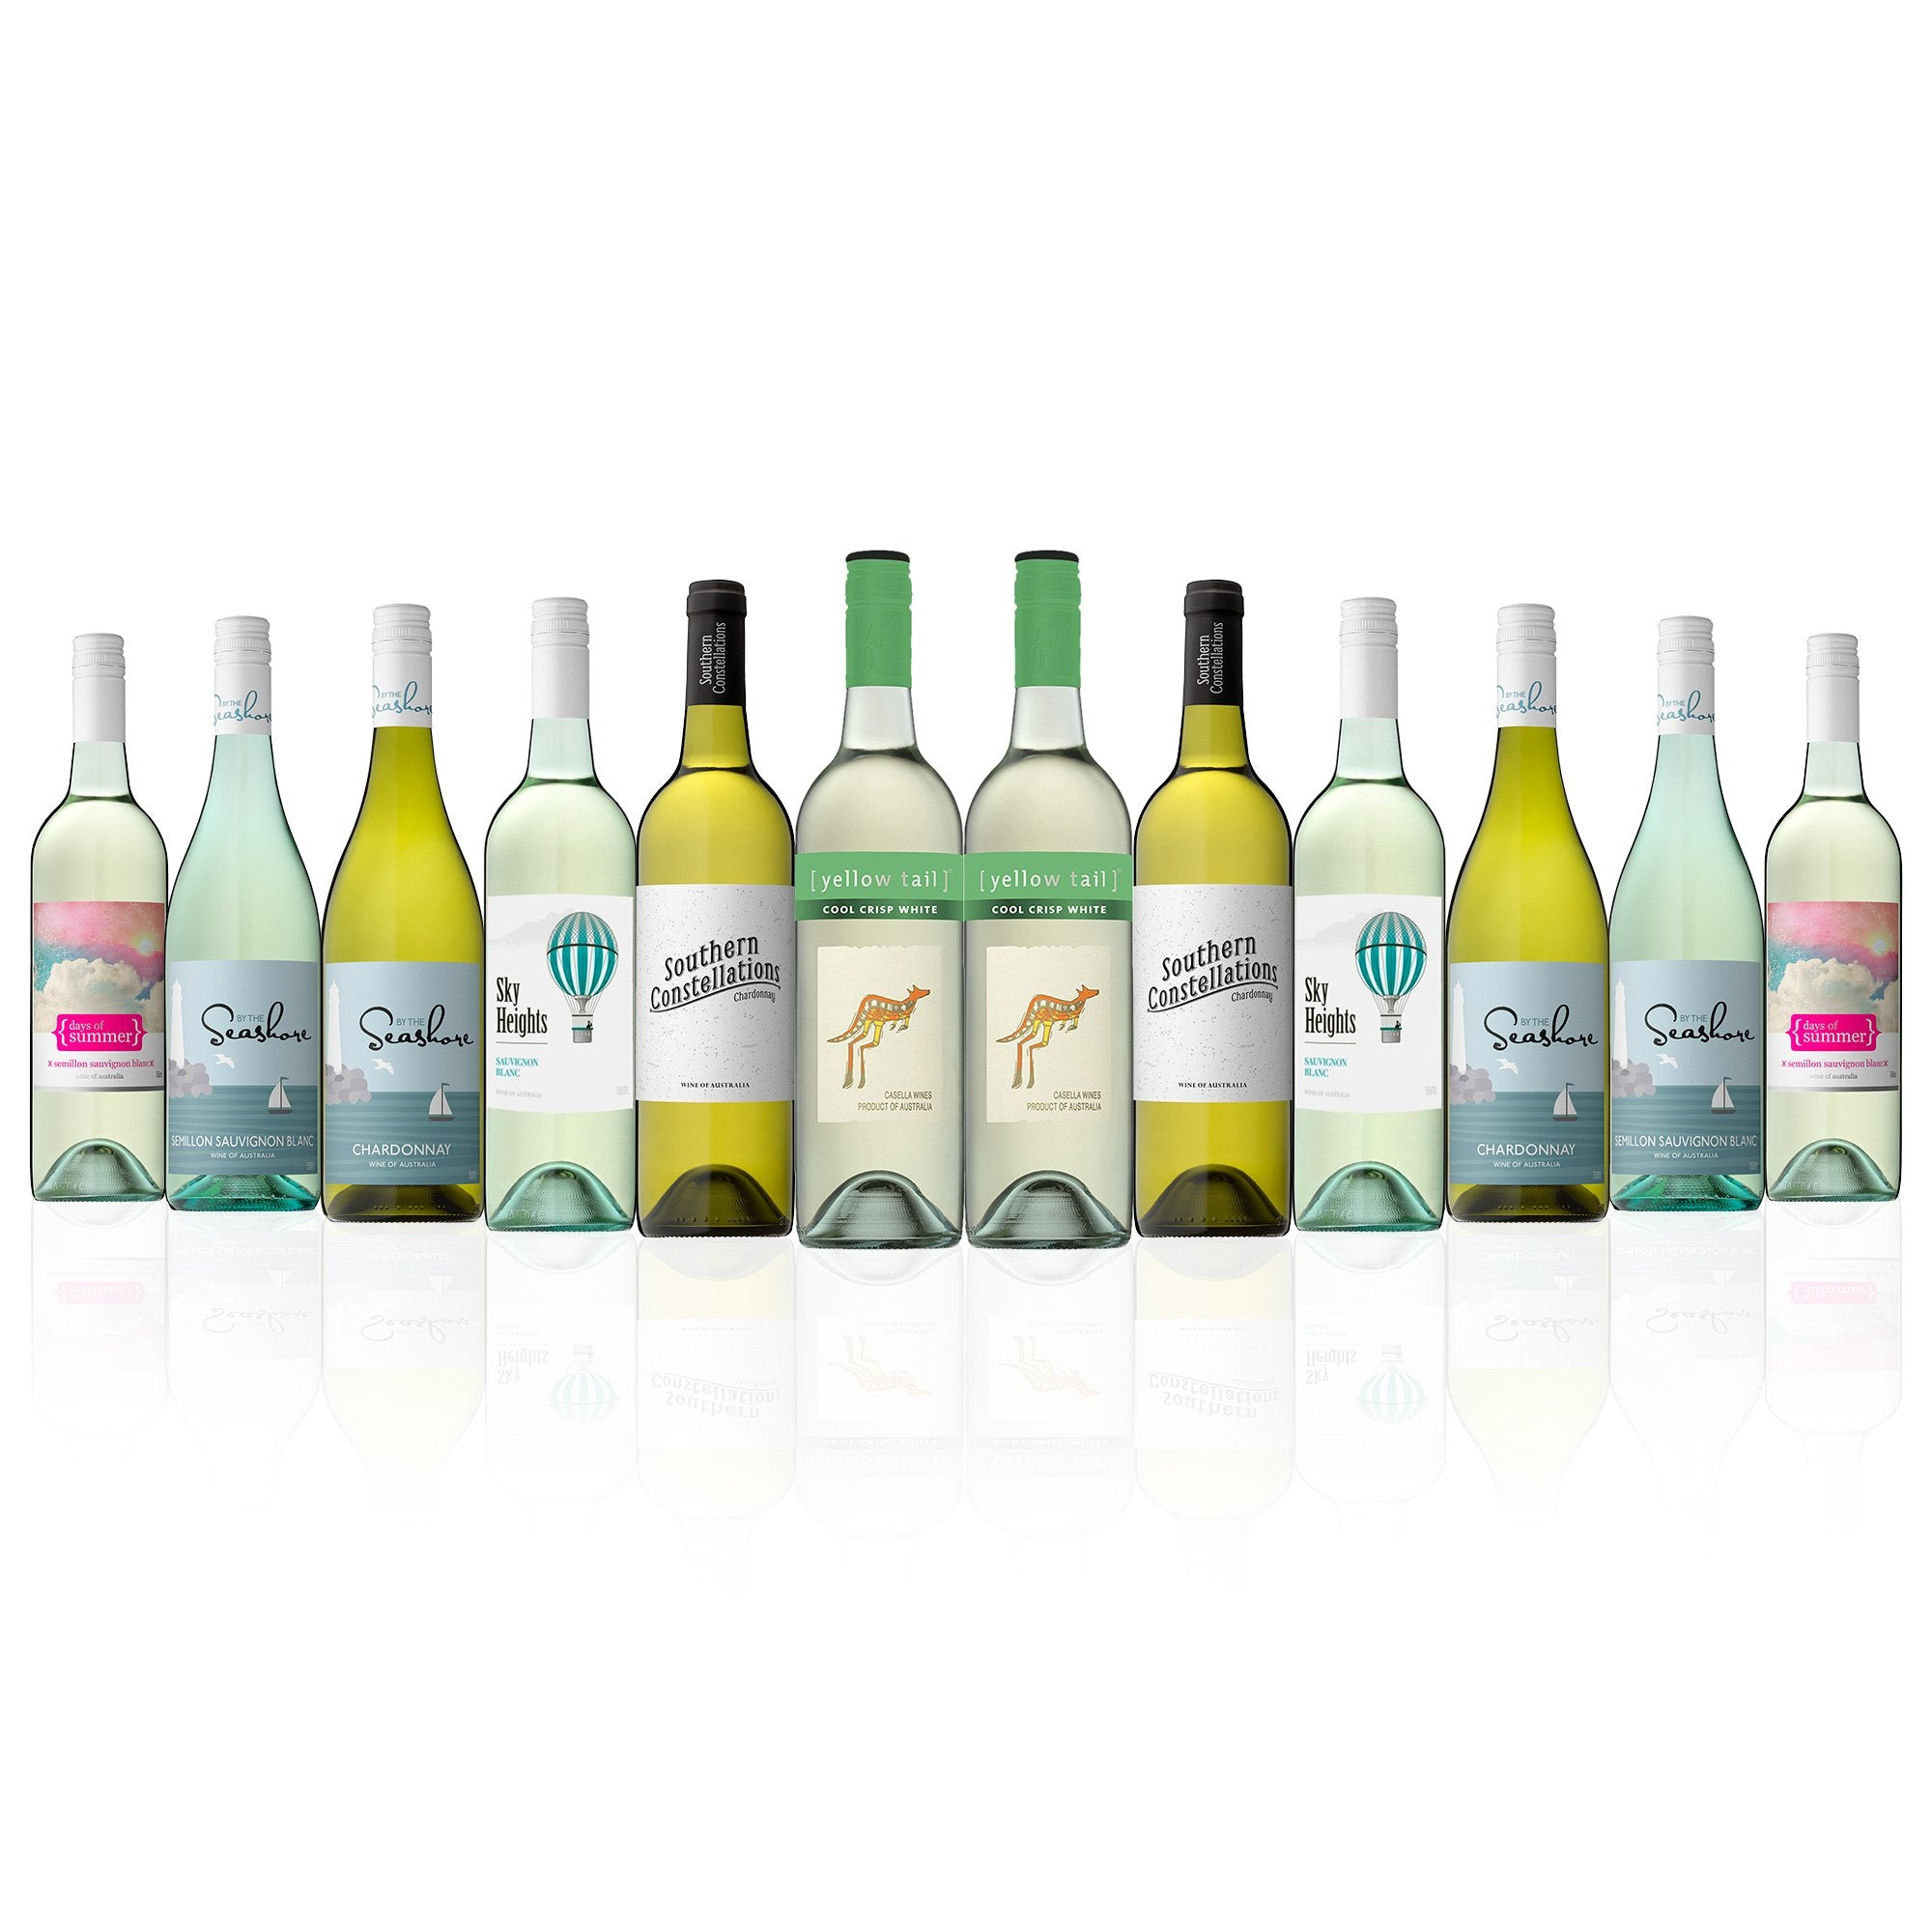 Mixed White featuring Yellow Tail Cool Crisp White (12 Bottles)